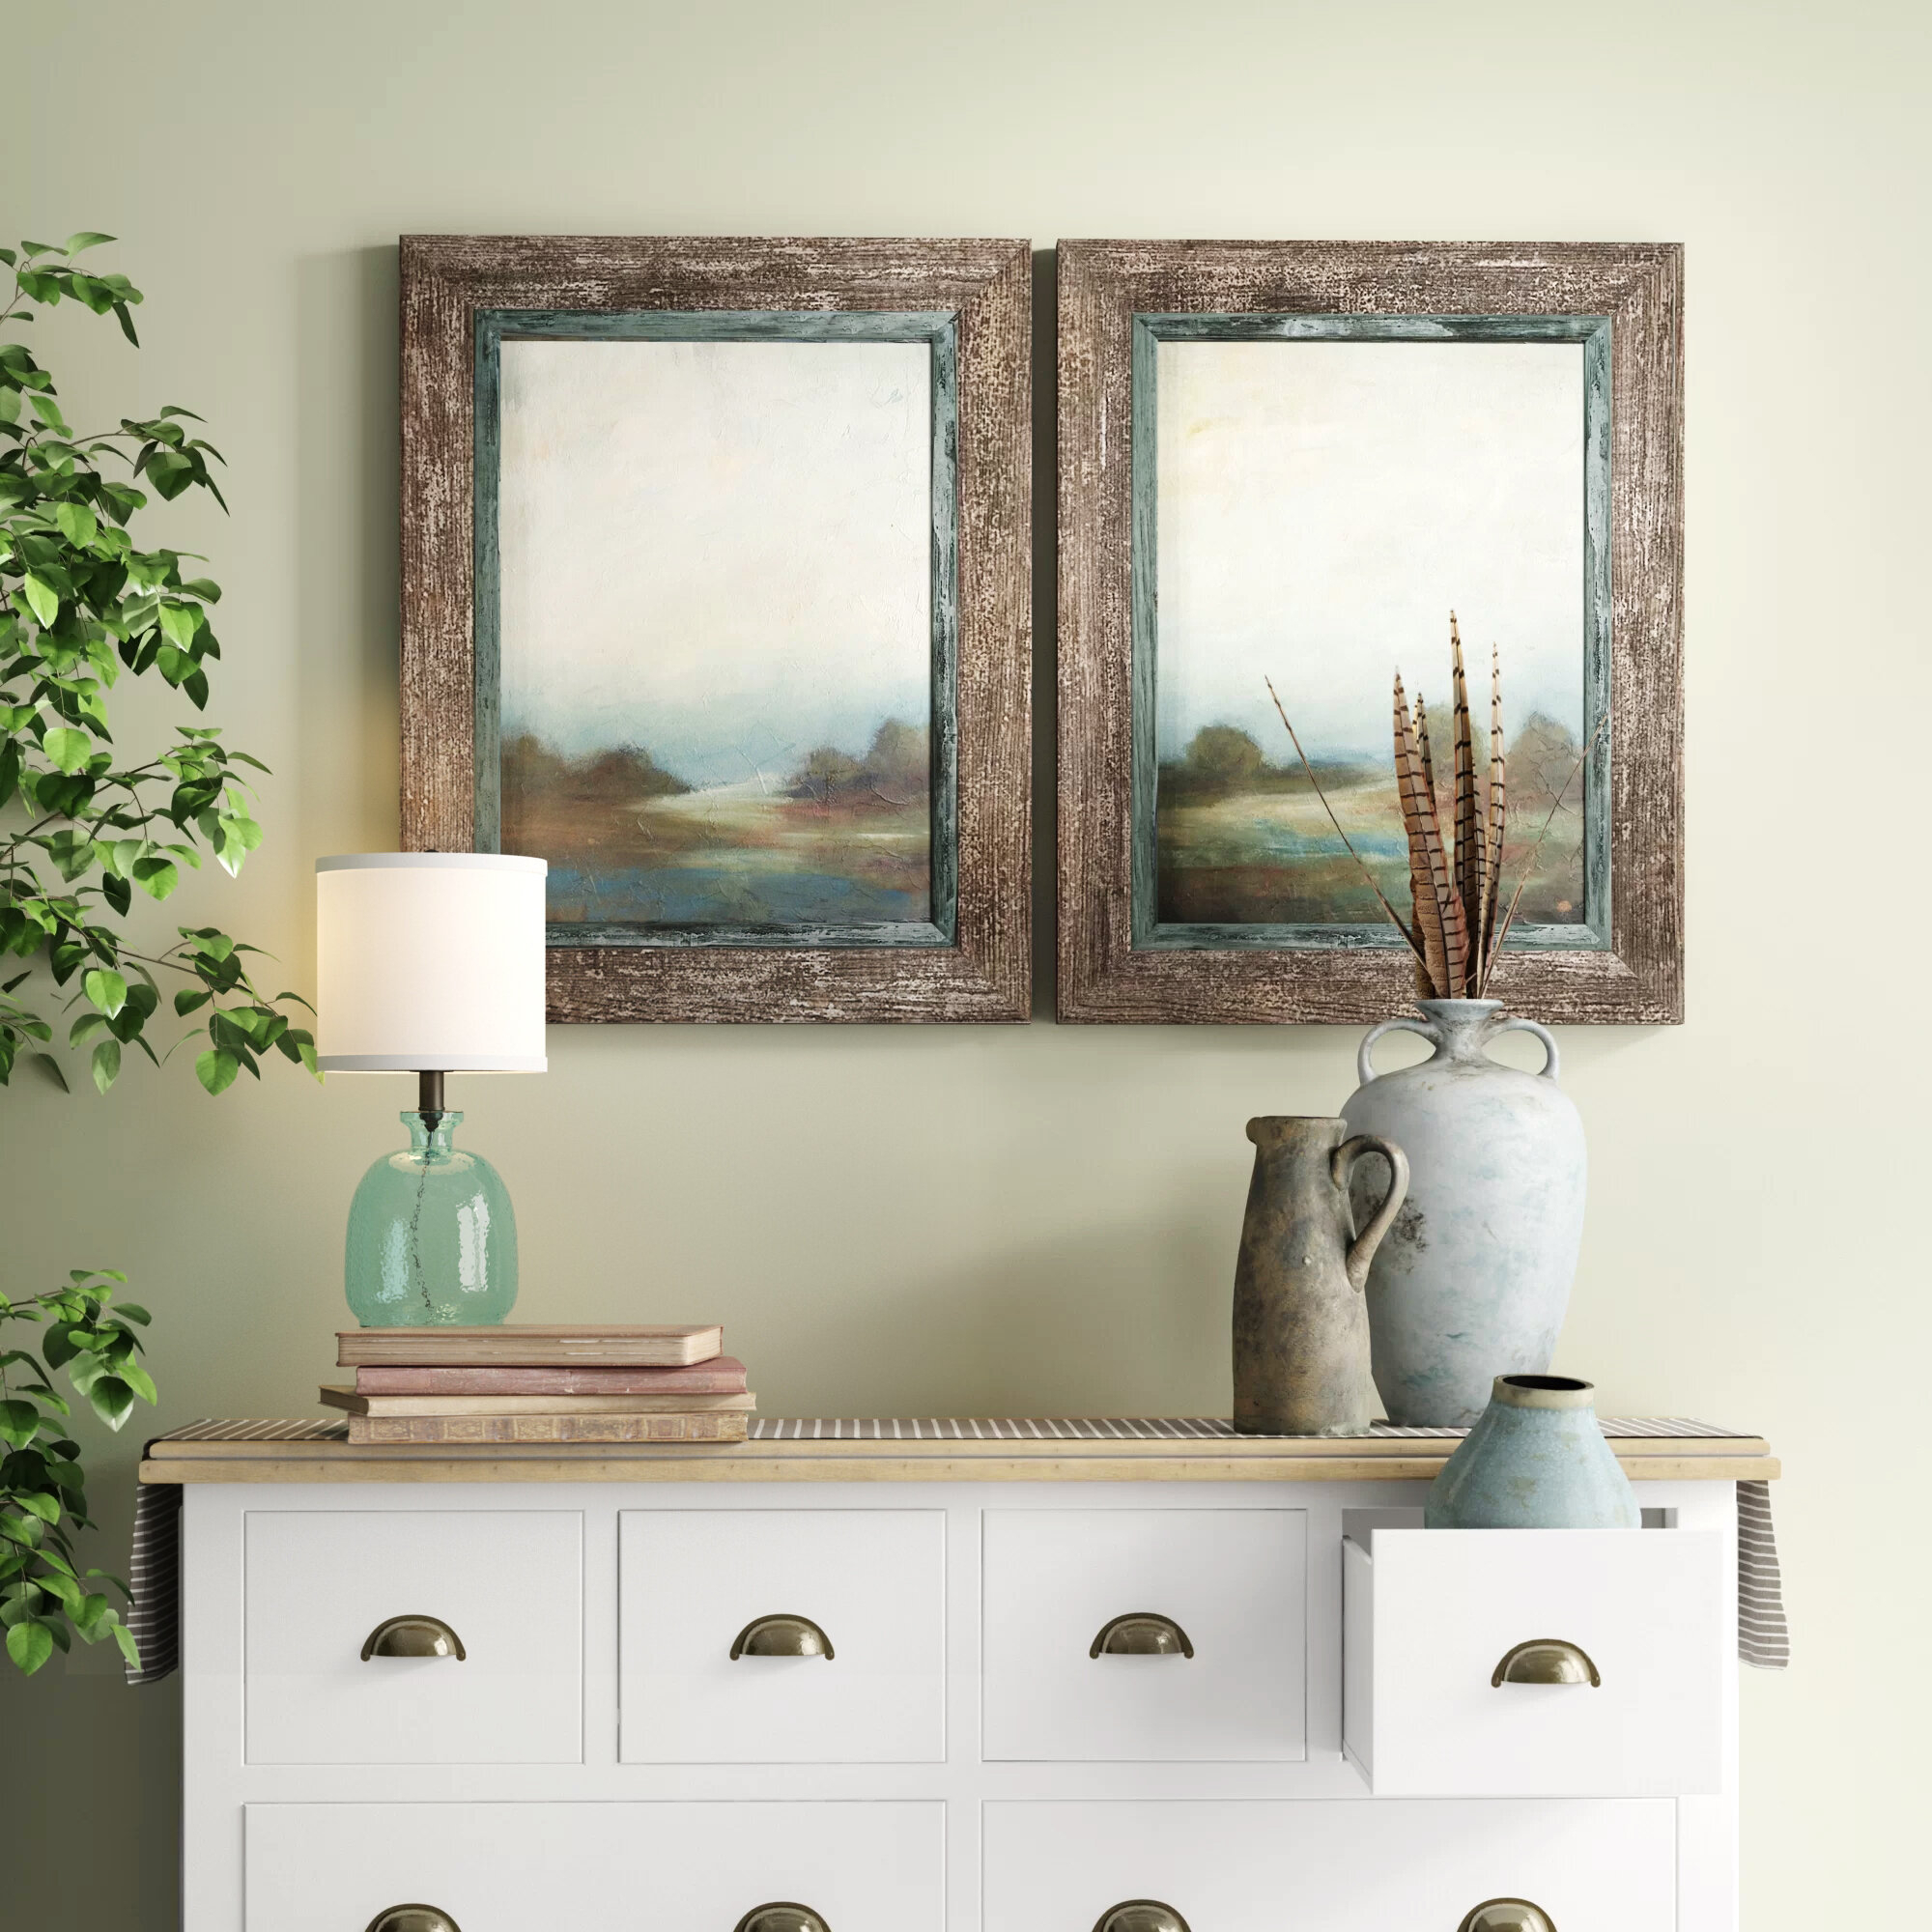 Farmhouse & Rustic Framed Wall Art | Birch Lane within 3 Piece Acrylic Burst Wall Decor Sets (Set of 3) (Image 10 of 30)